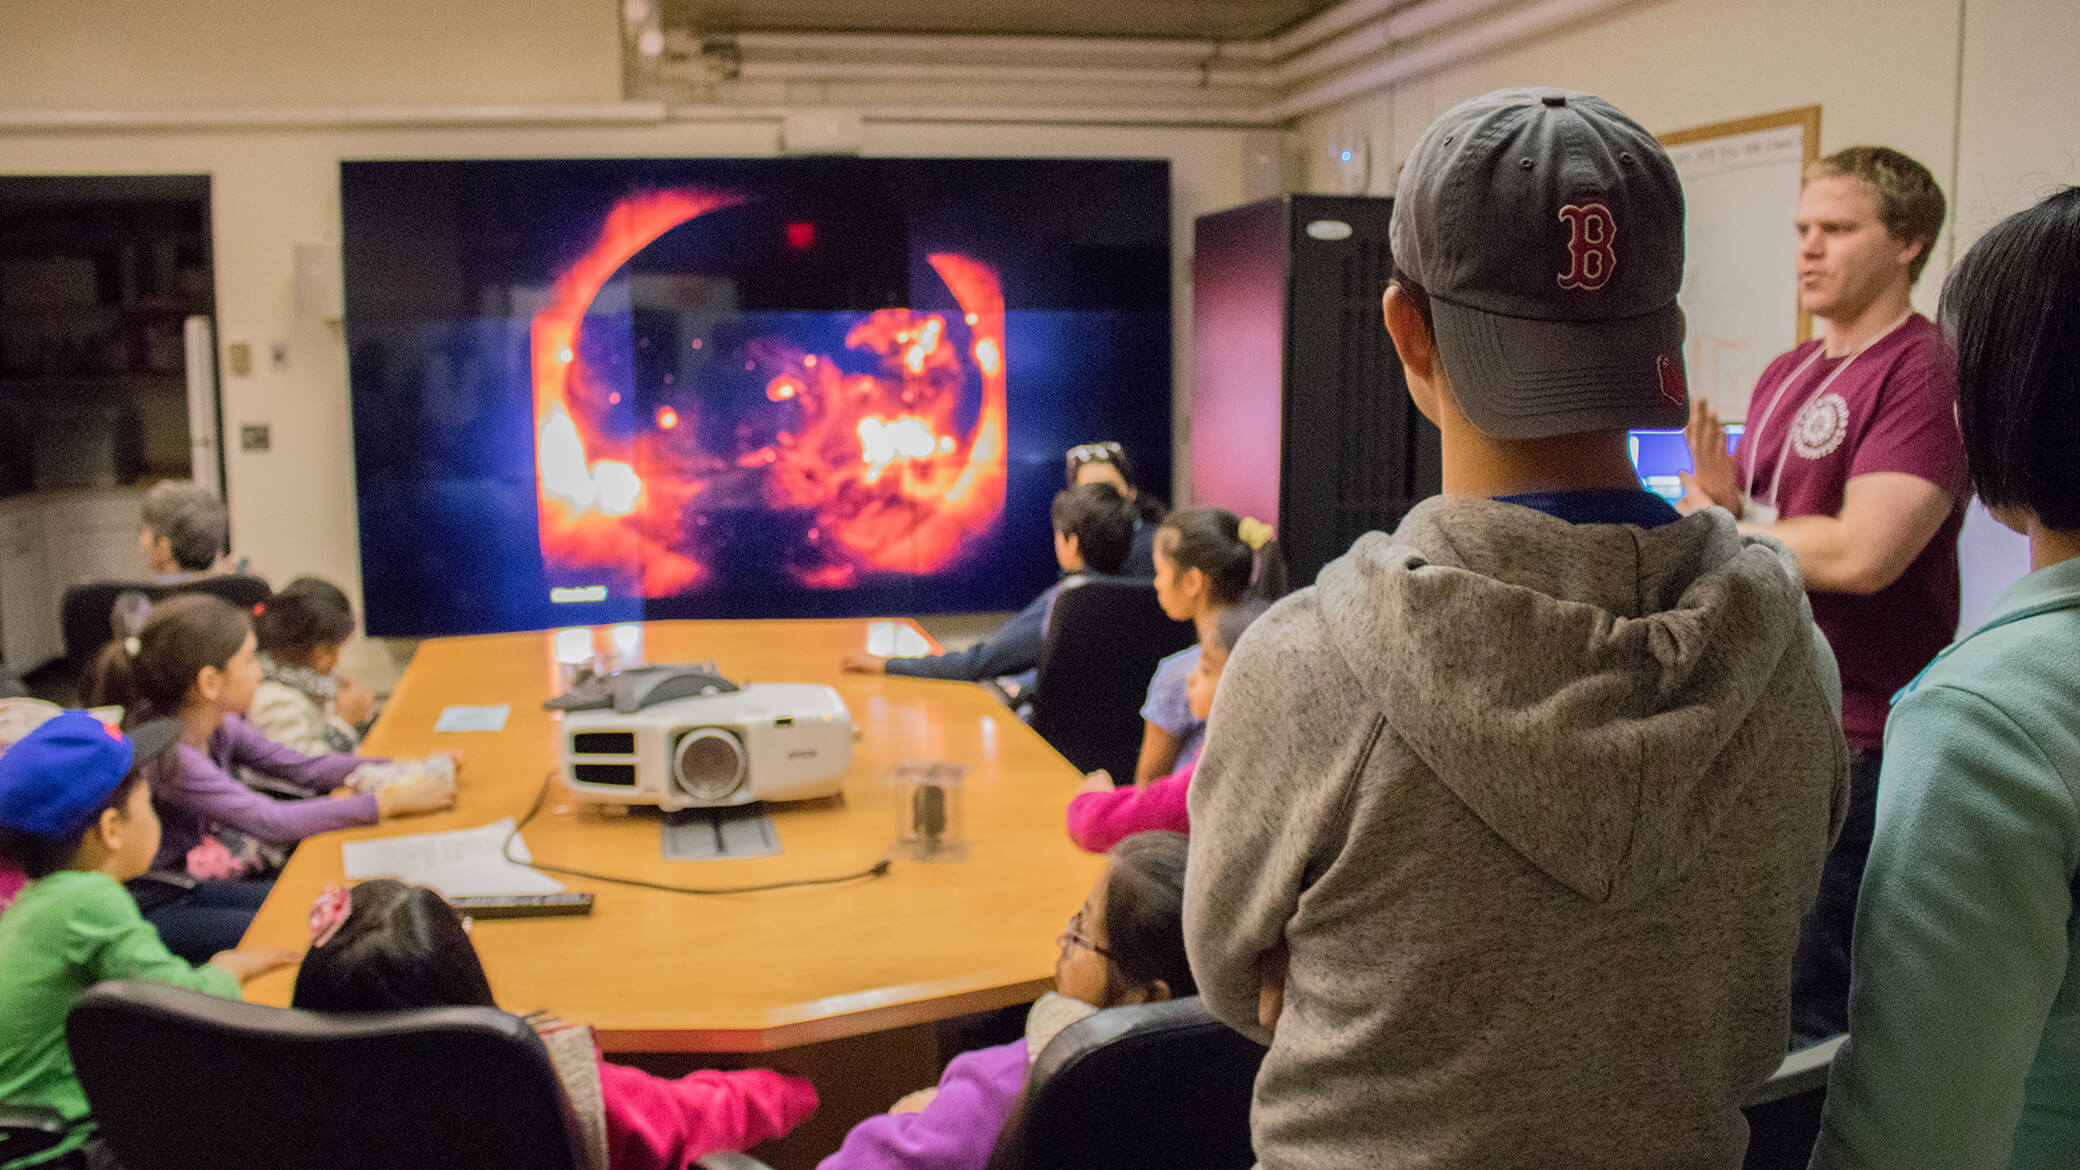 Members of the public attend Cambridge Explores the Universe 2018 at the Center for Astrophysics | Harvard & Smithsonian.